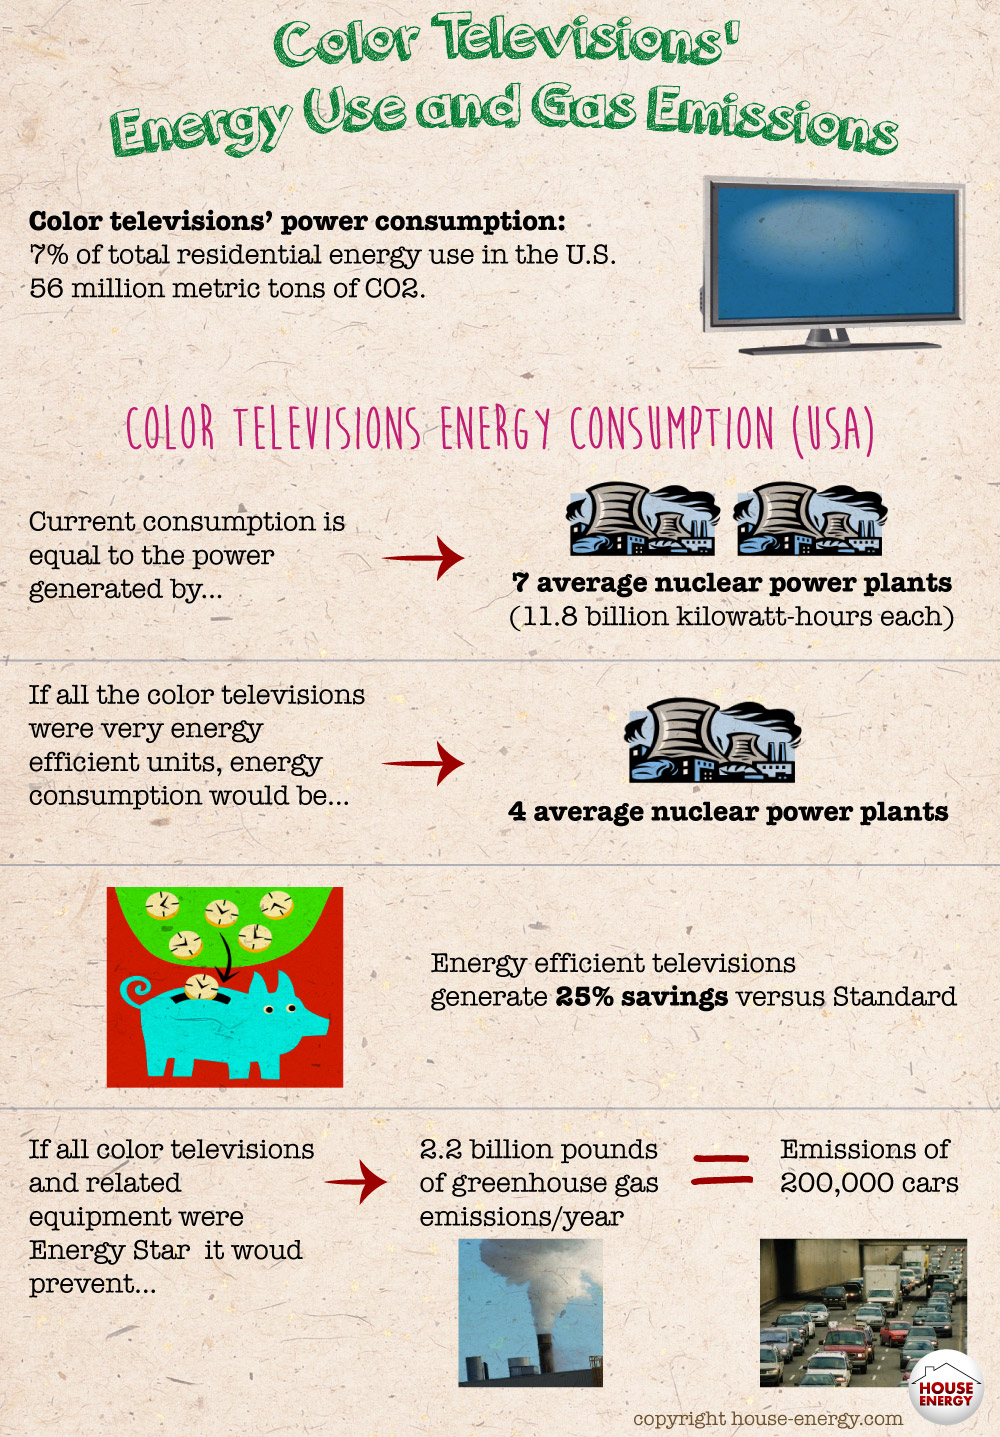 Color televisions impact on and environment